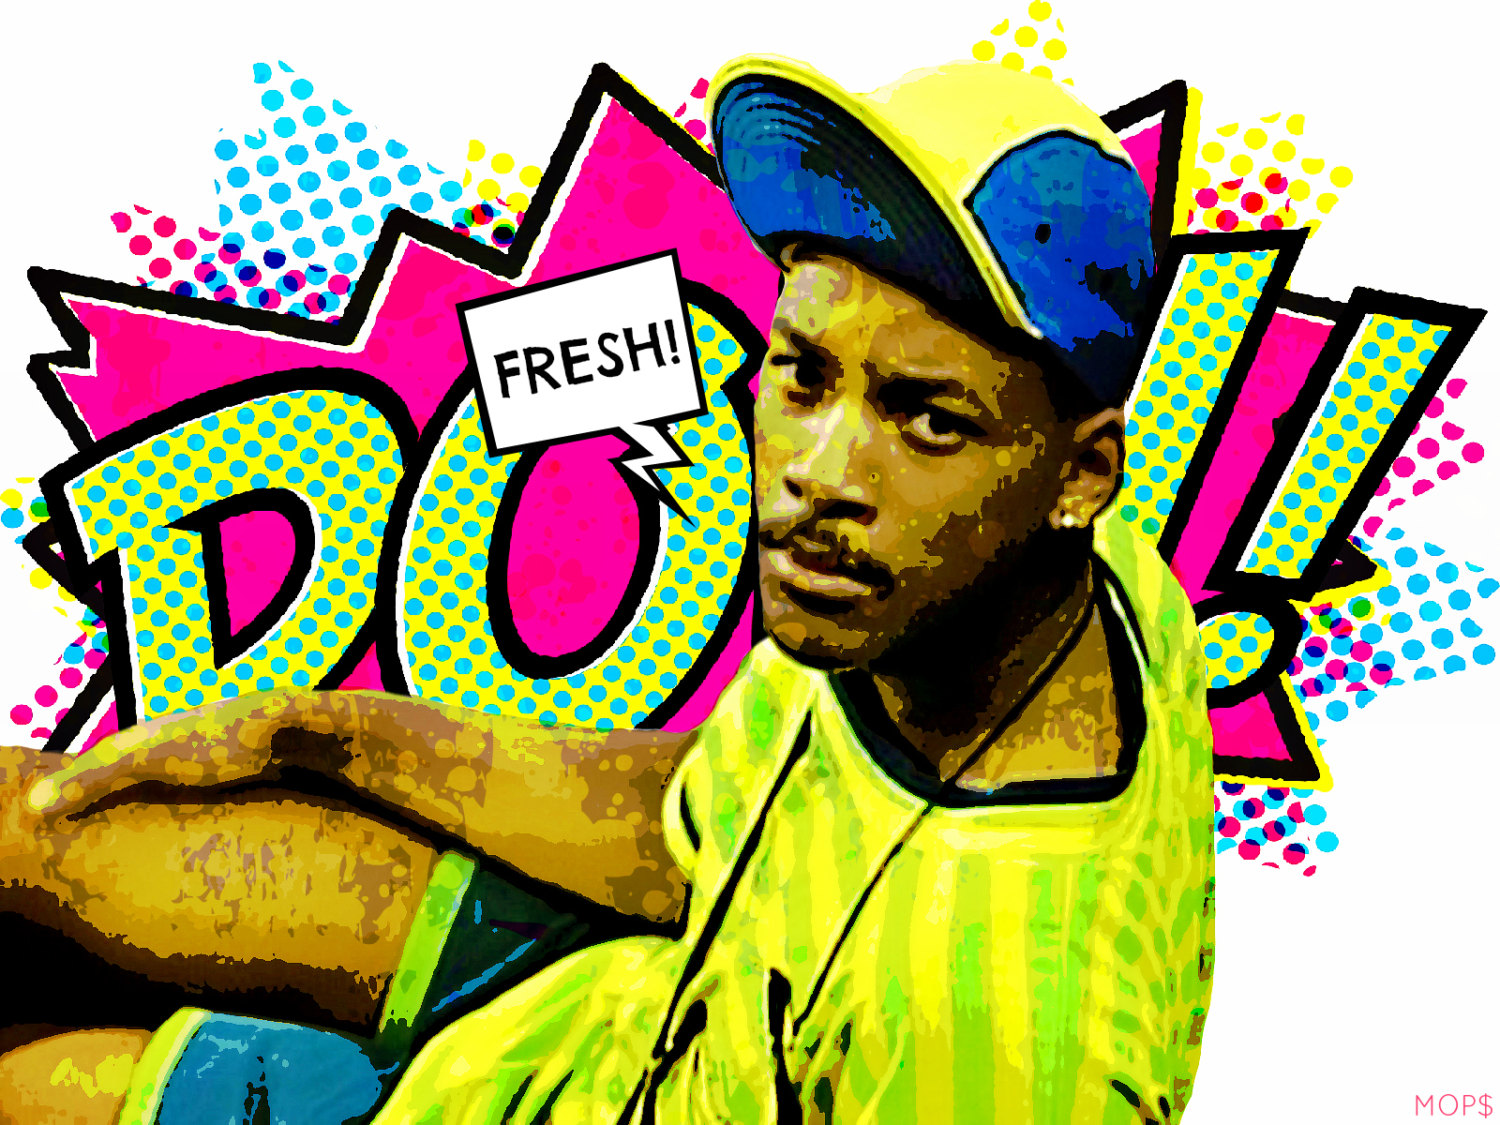 Fresh Prince Of Bel Air Rap Song From The Sitcom